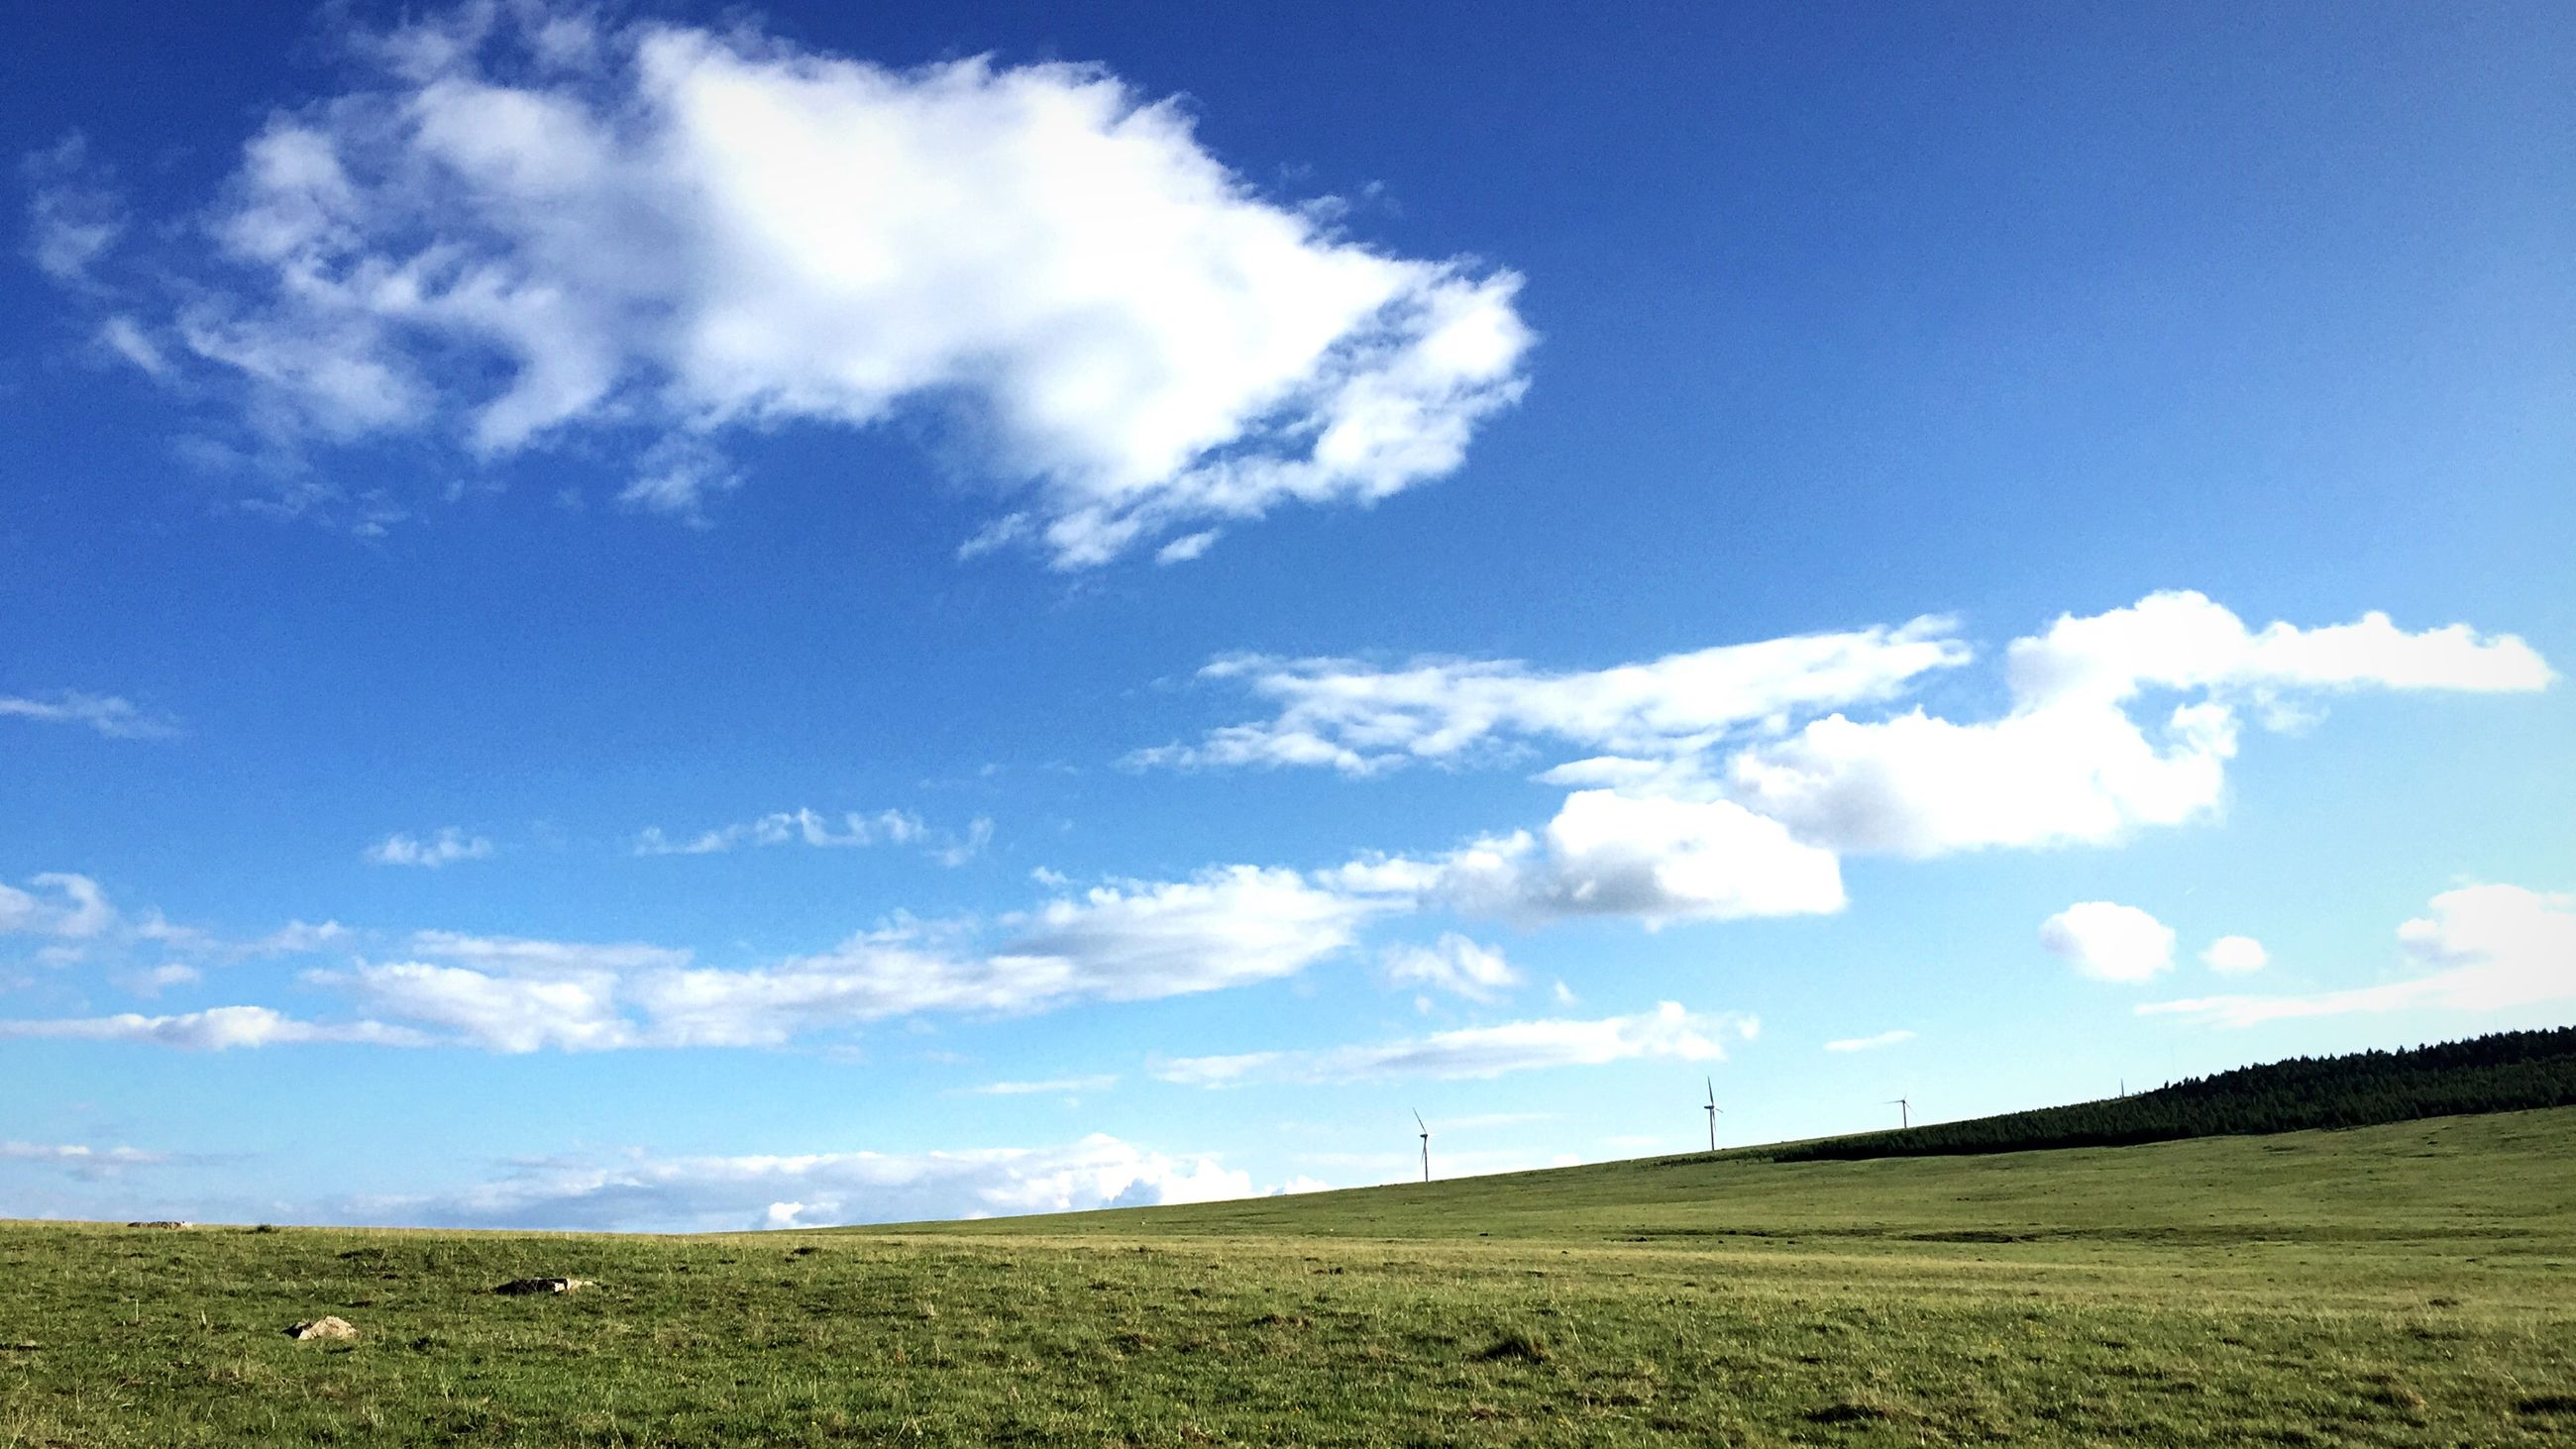 sky, field, landscape, grass, tranquil scene, tranquility, blue, scenics, cloud, rural scene, beauty in nature, cloud - sky, nature, horizon over land, agriculture, grassy, farm, day, remote, outdoors